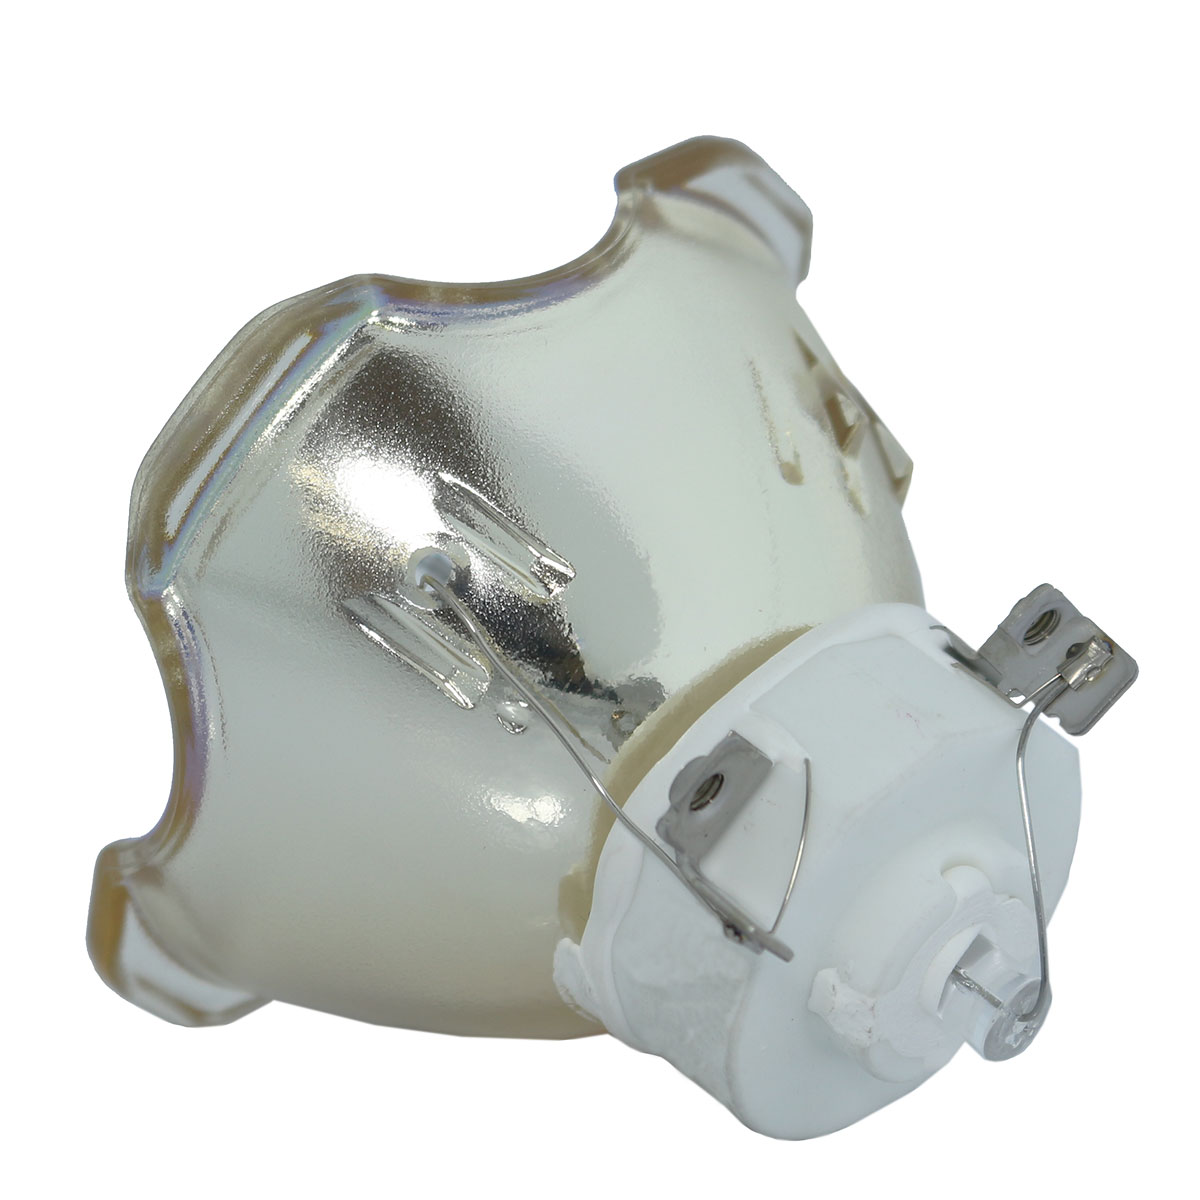 Lutema Economy for Panasonic PT-VX500 Projector Lamp (Bulb Only) - image 3 de 5